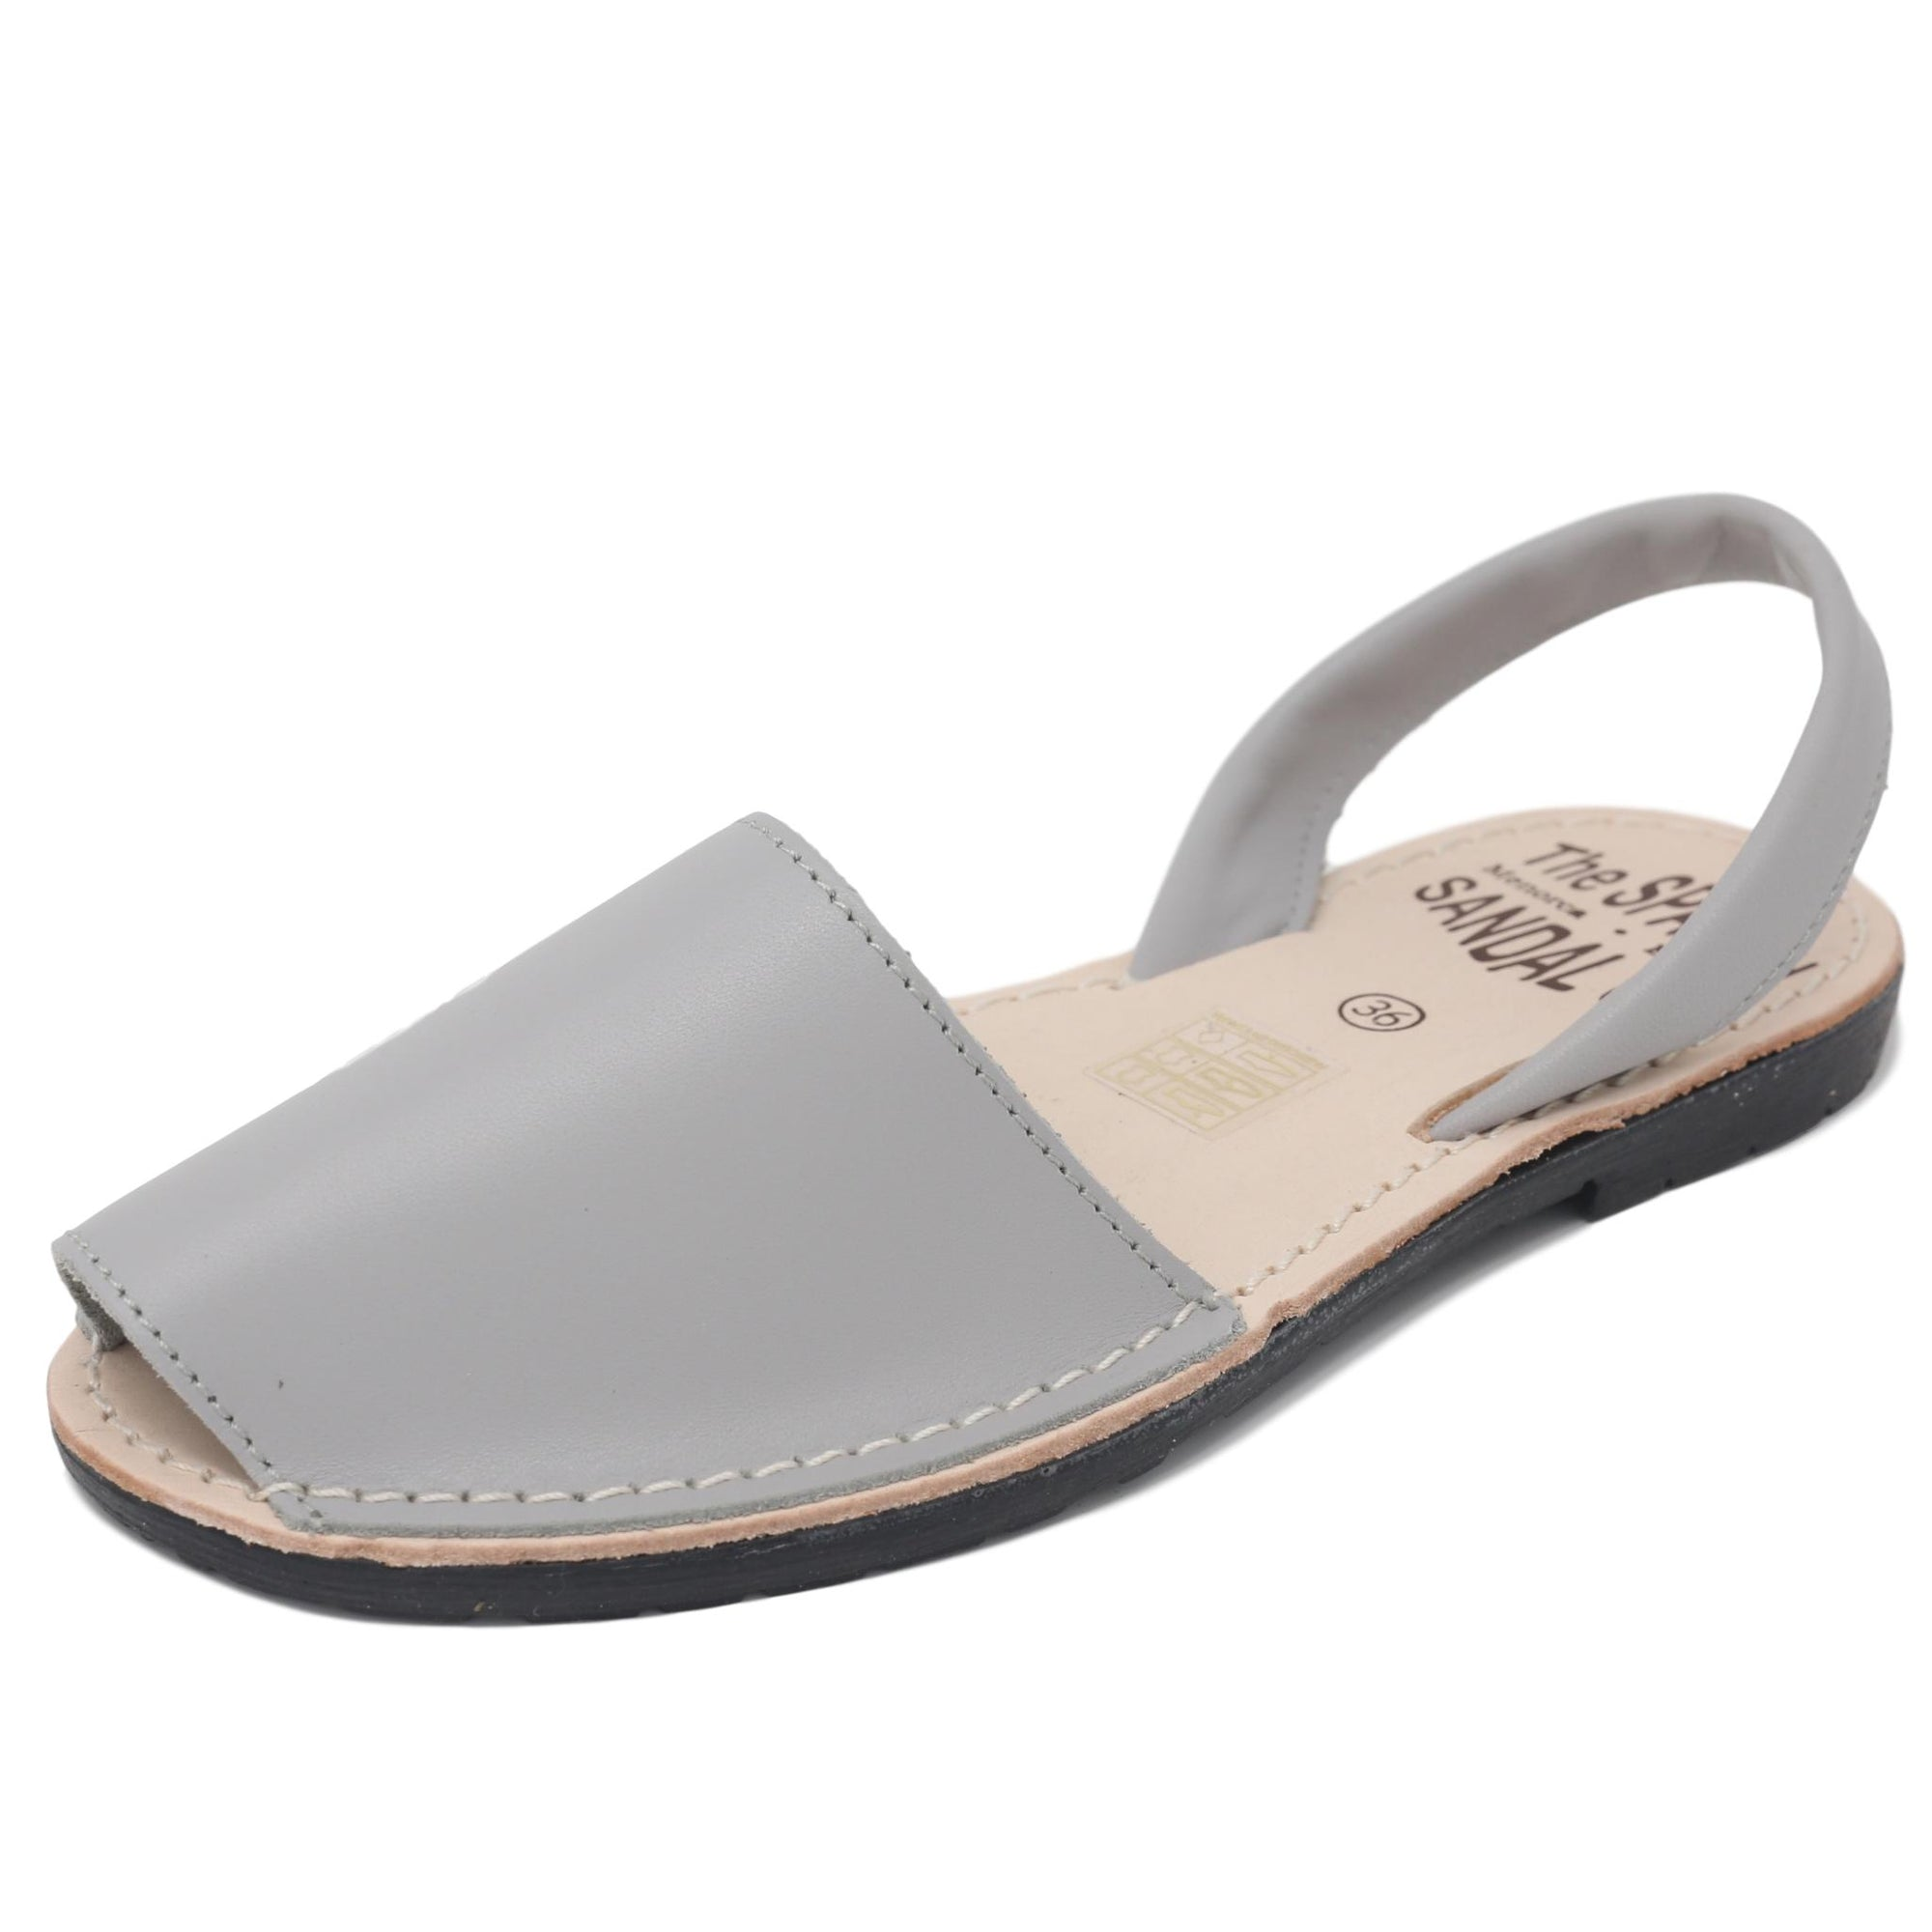 Classic soft grey sandals - diagonal view